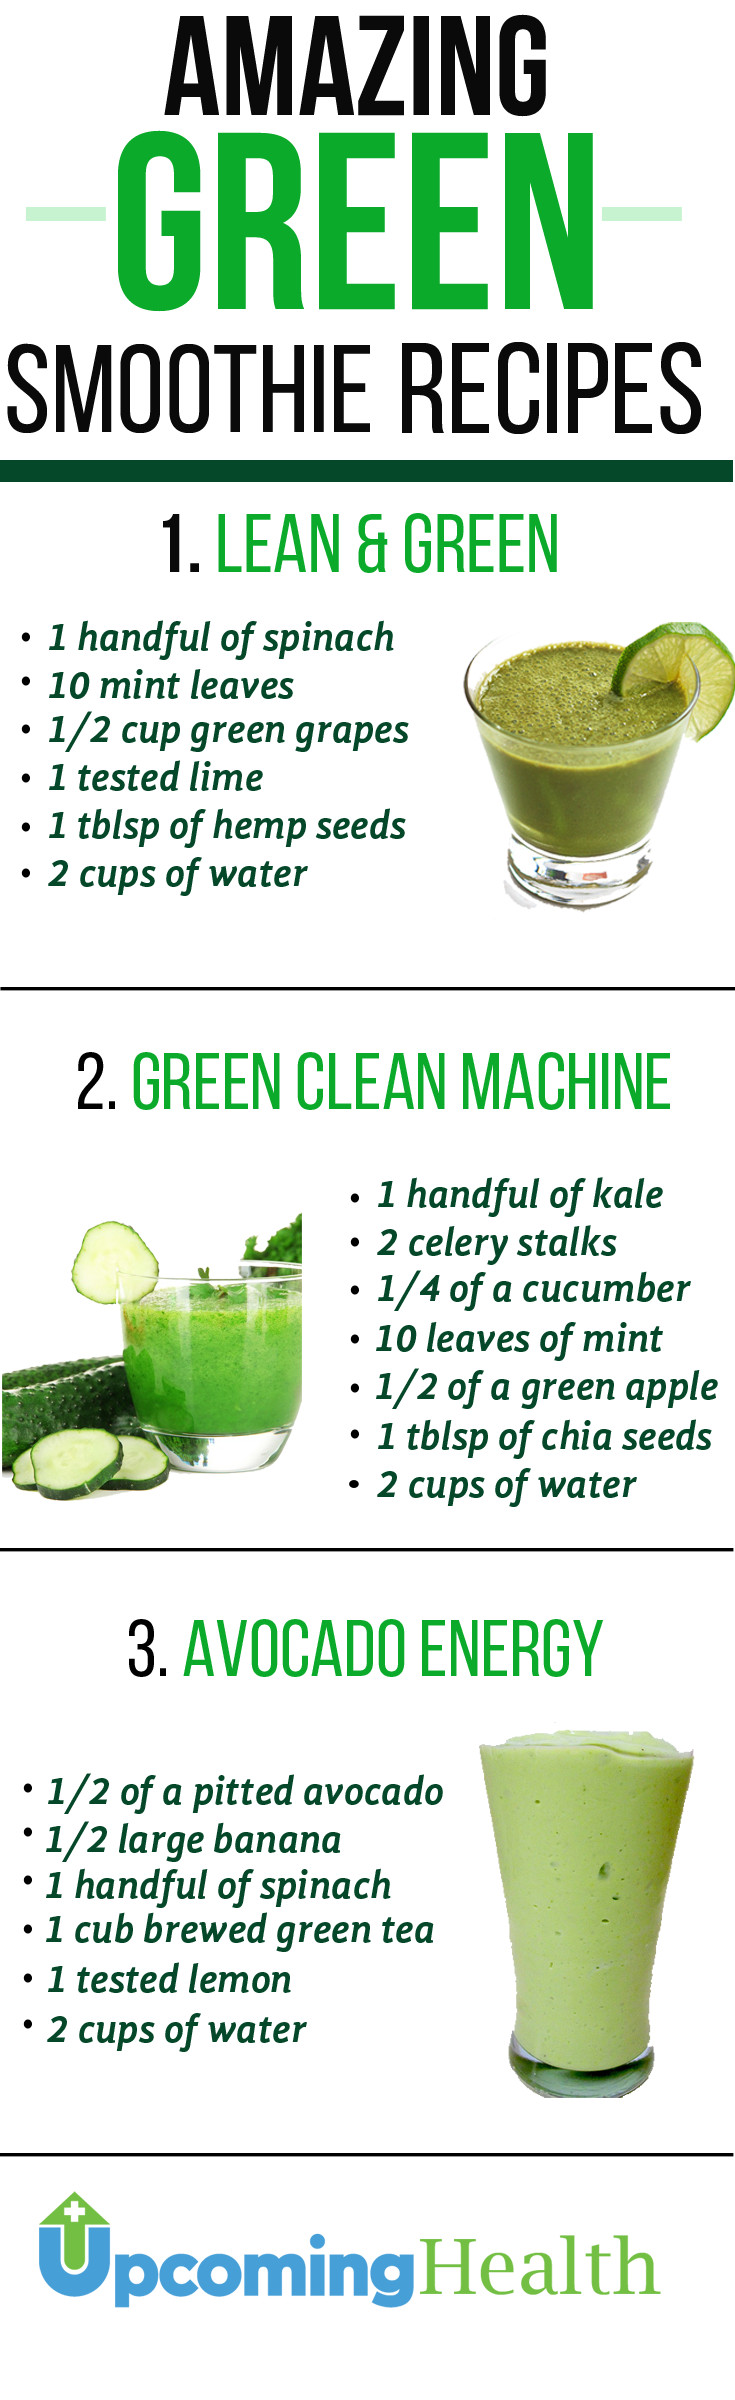 Diet Smoothie Recipes  Green Smoothies Will Revolutionize Your Health